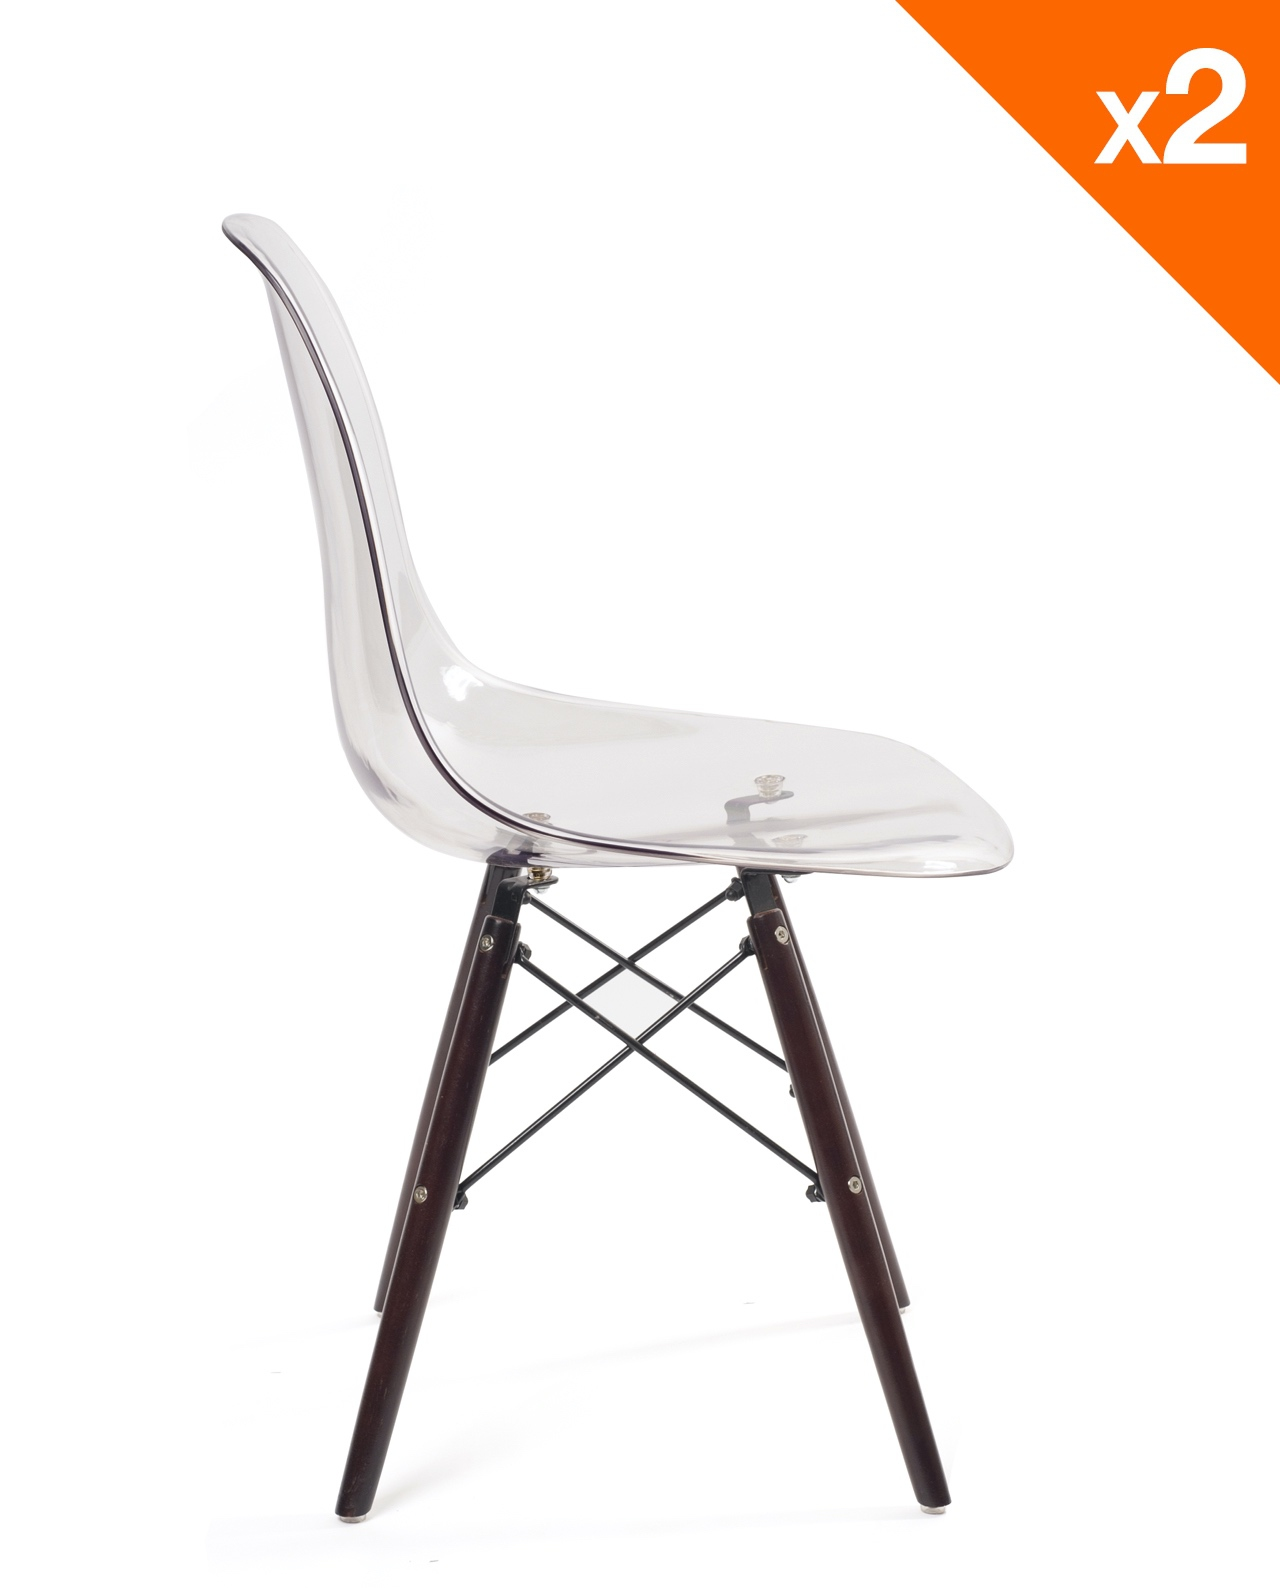 Chaise Moderne Transparente: NEO Chaise Scandinave Transparente - Lot De 2